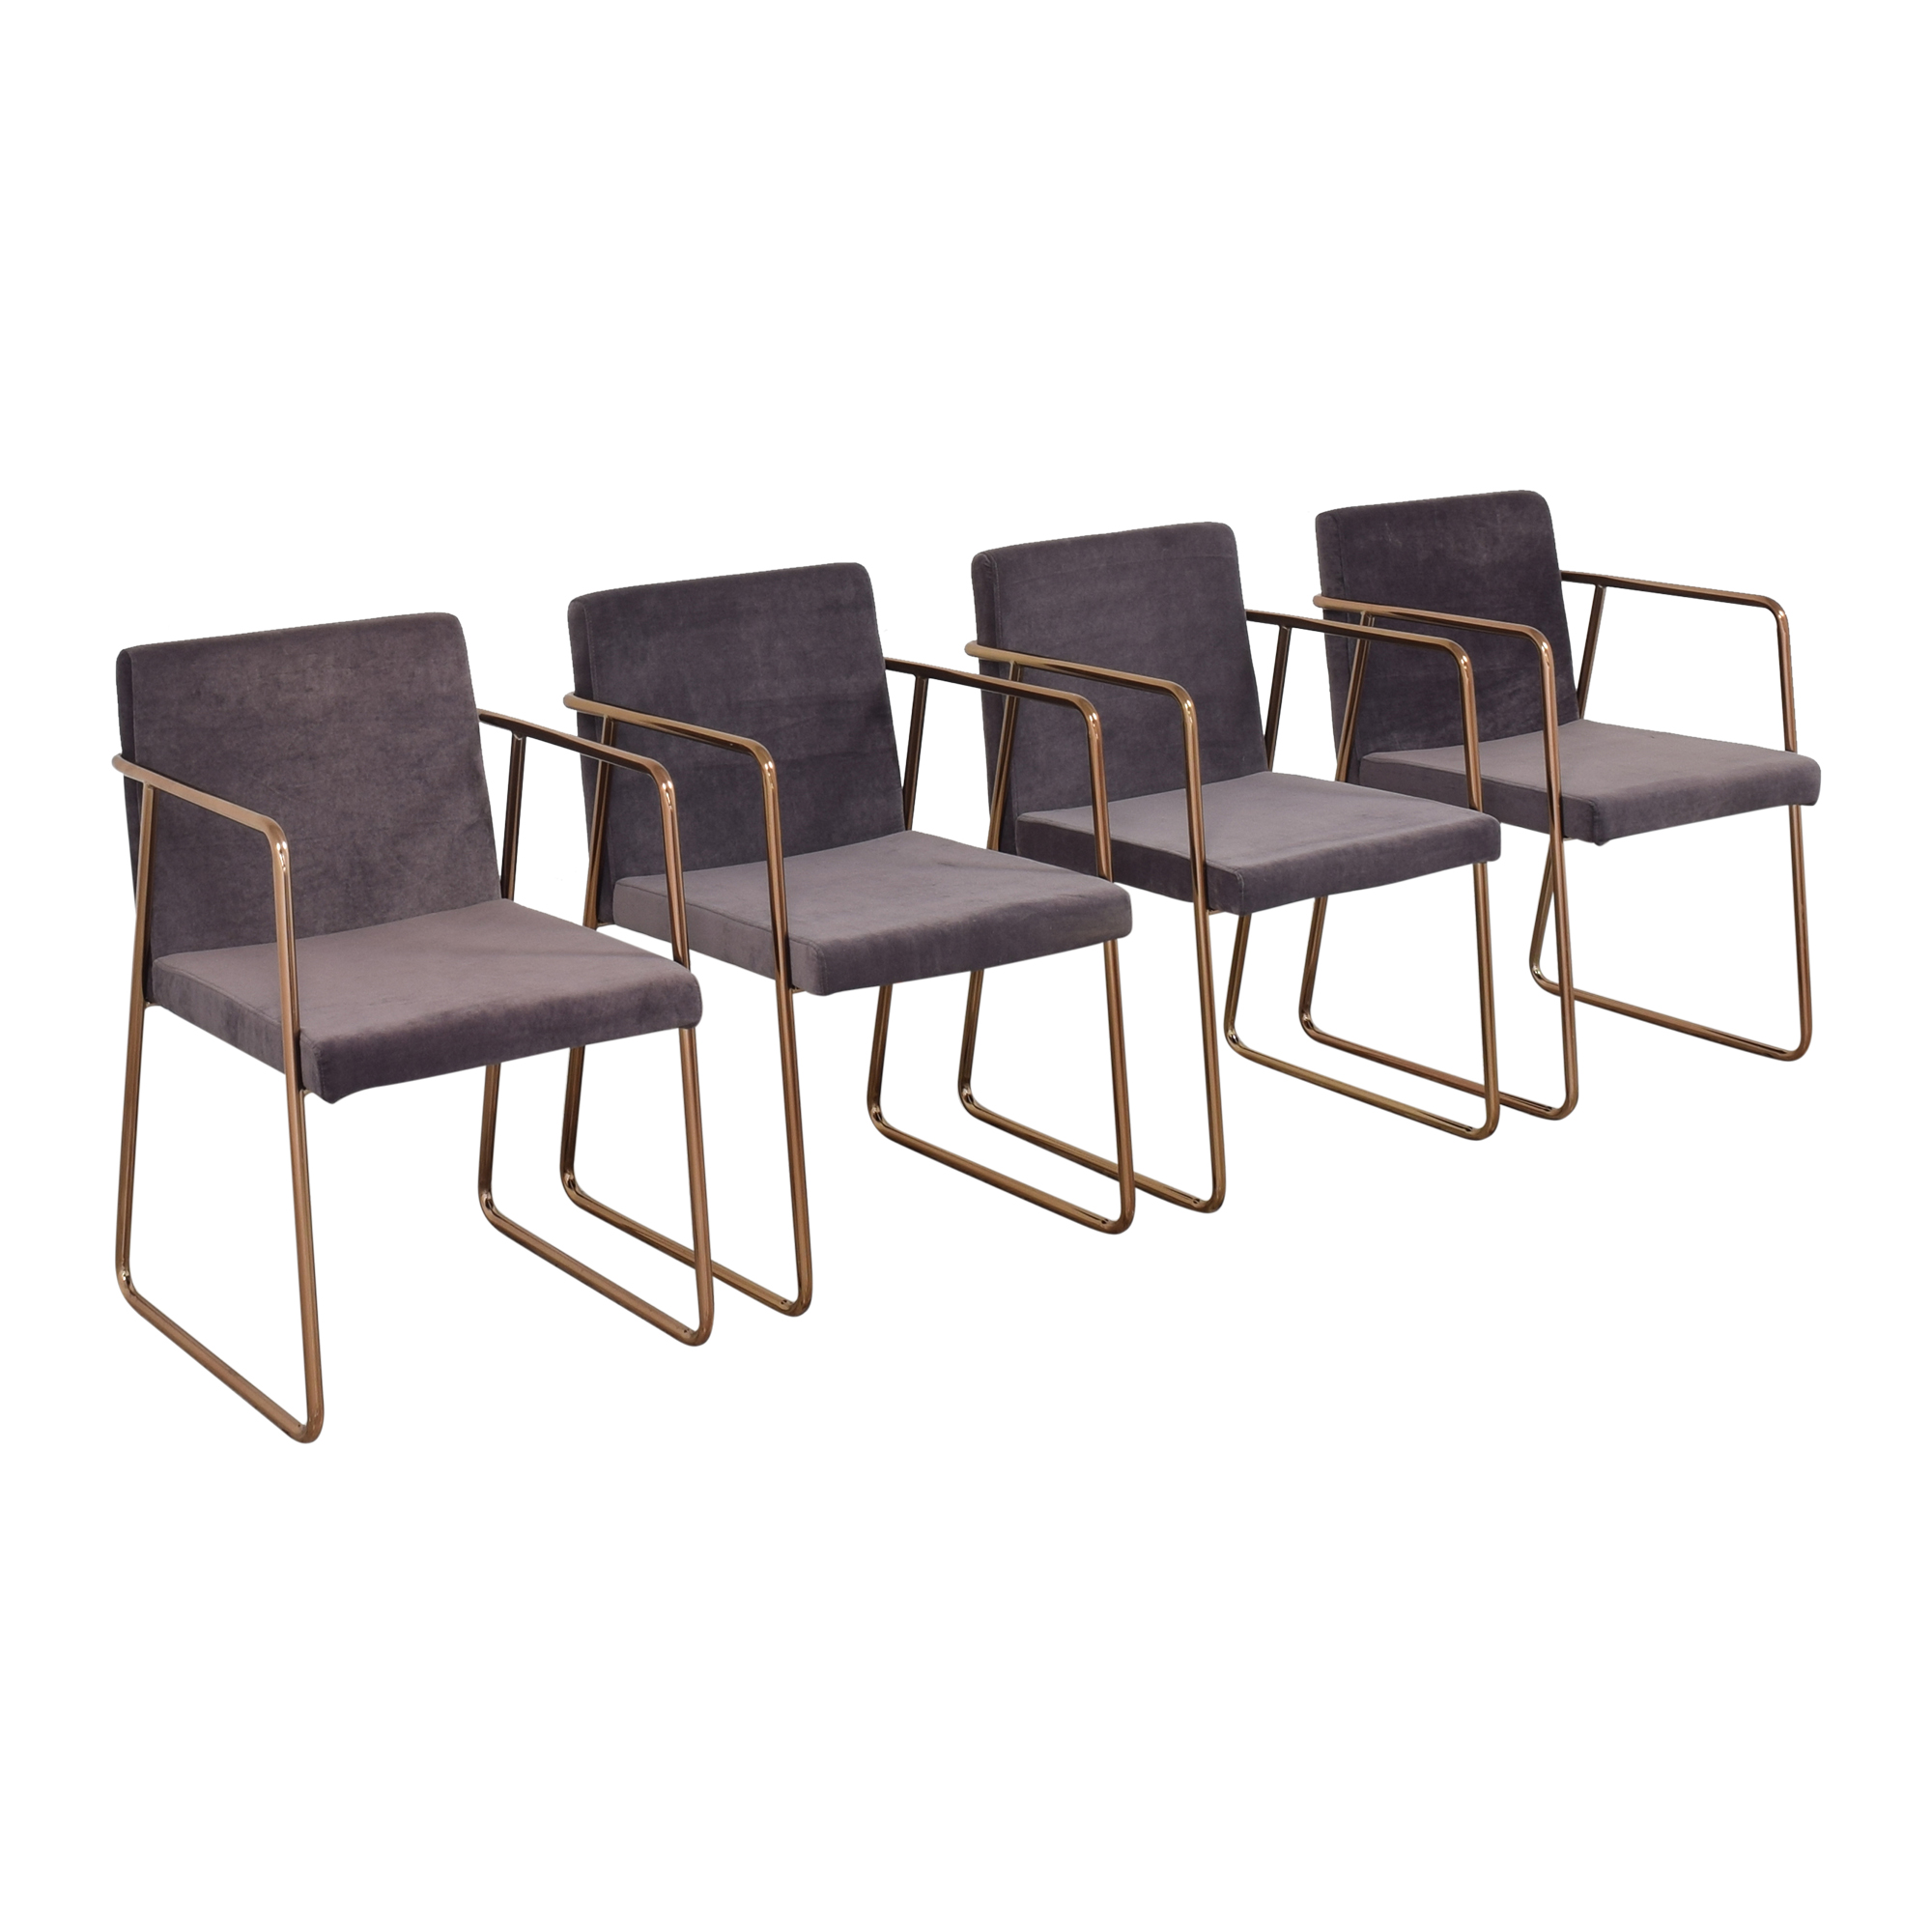 CB2 CB2 Rouka Chairs for sale